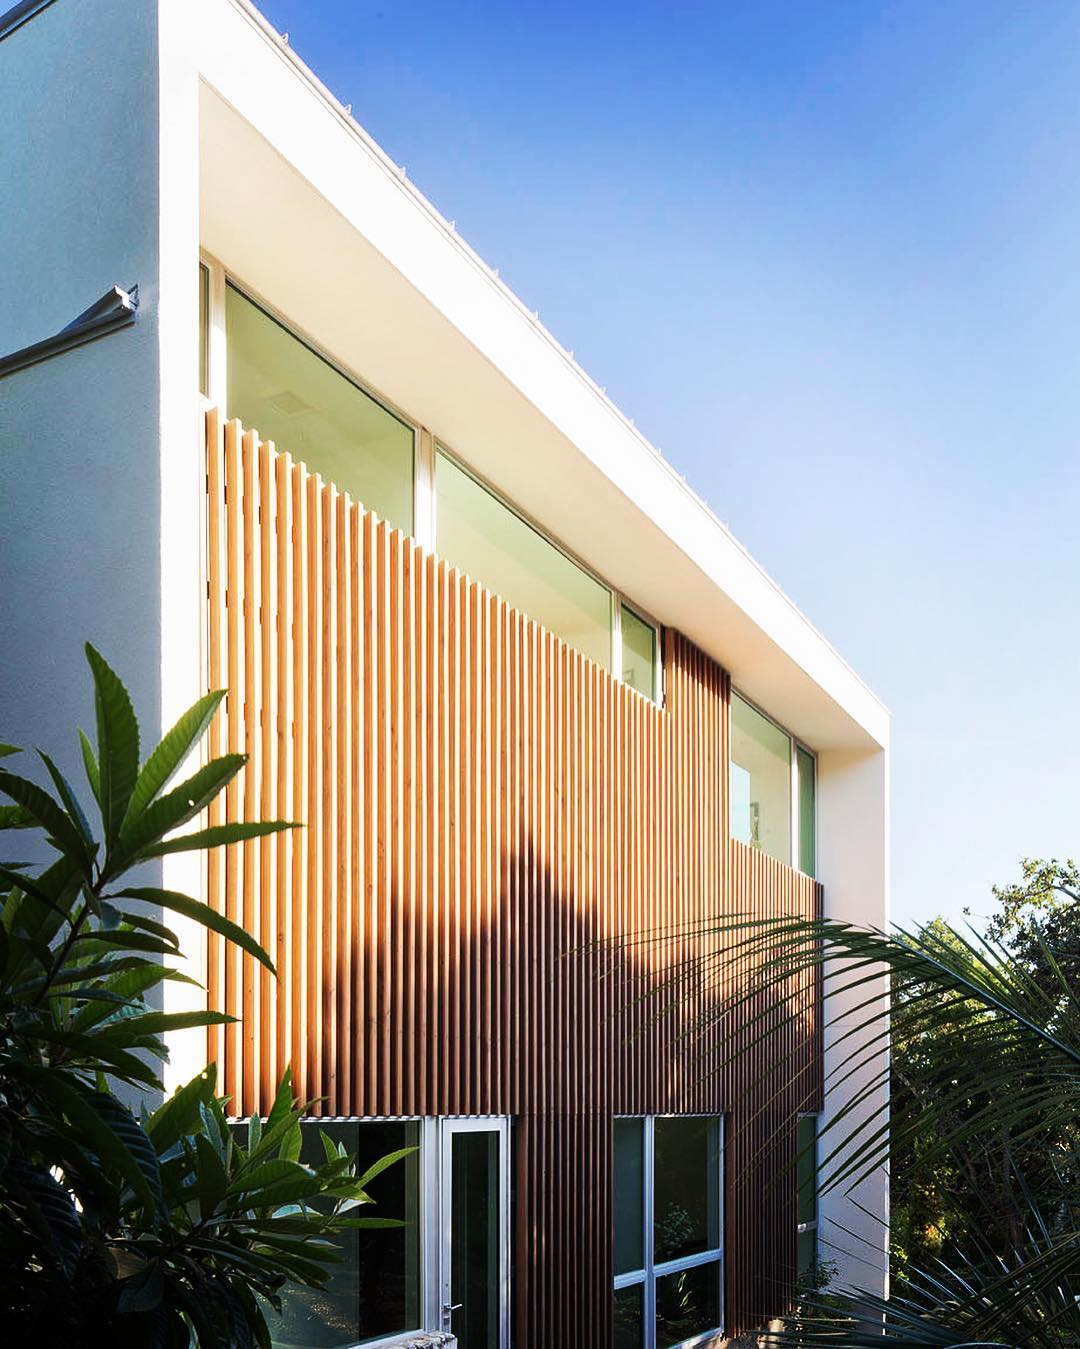 Douglas Fir provides texture and warmth to this @webberstudio designed home. Built by @foursquarebuilders